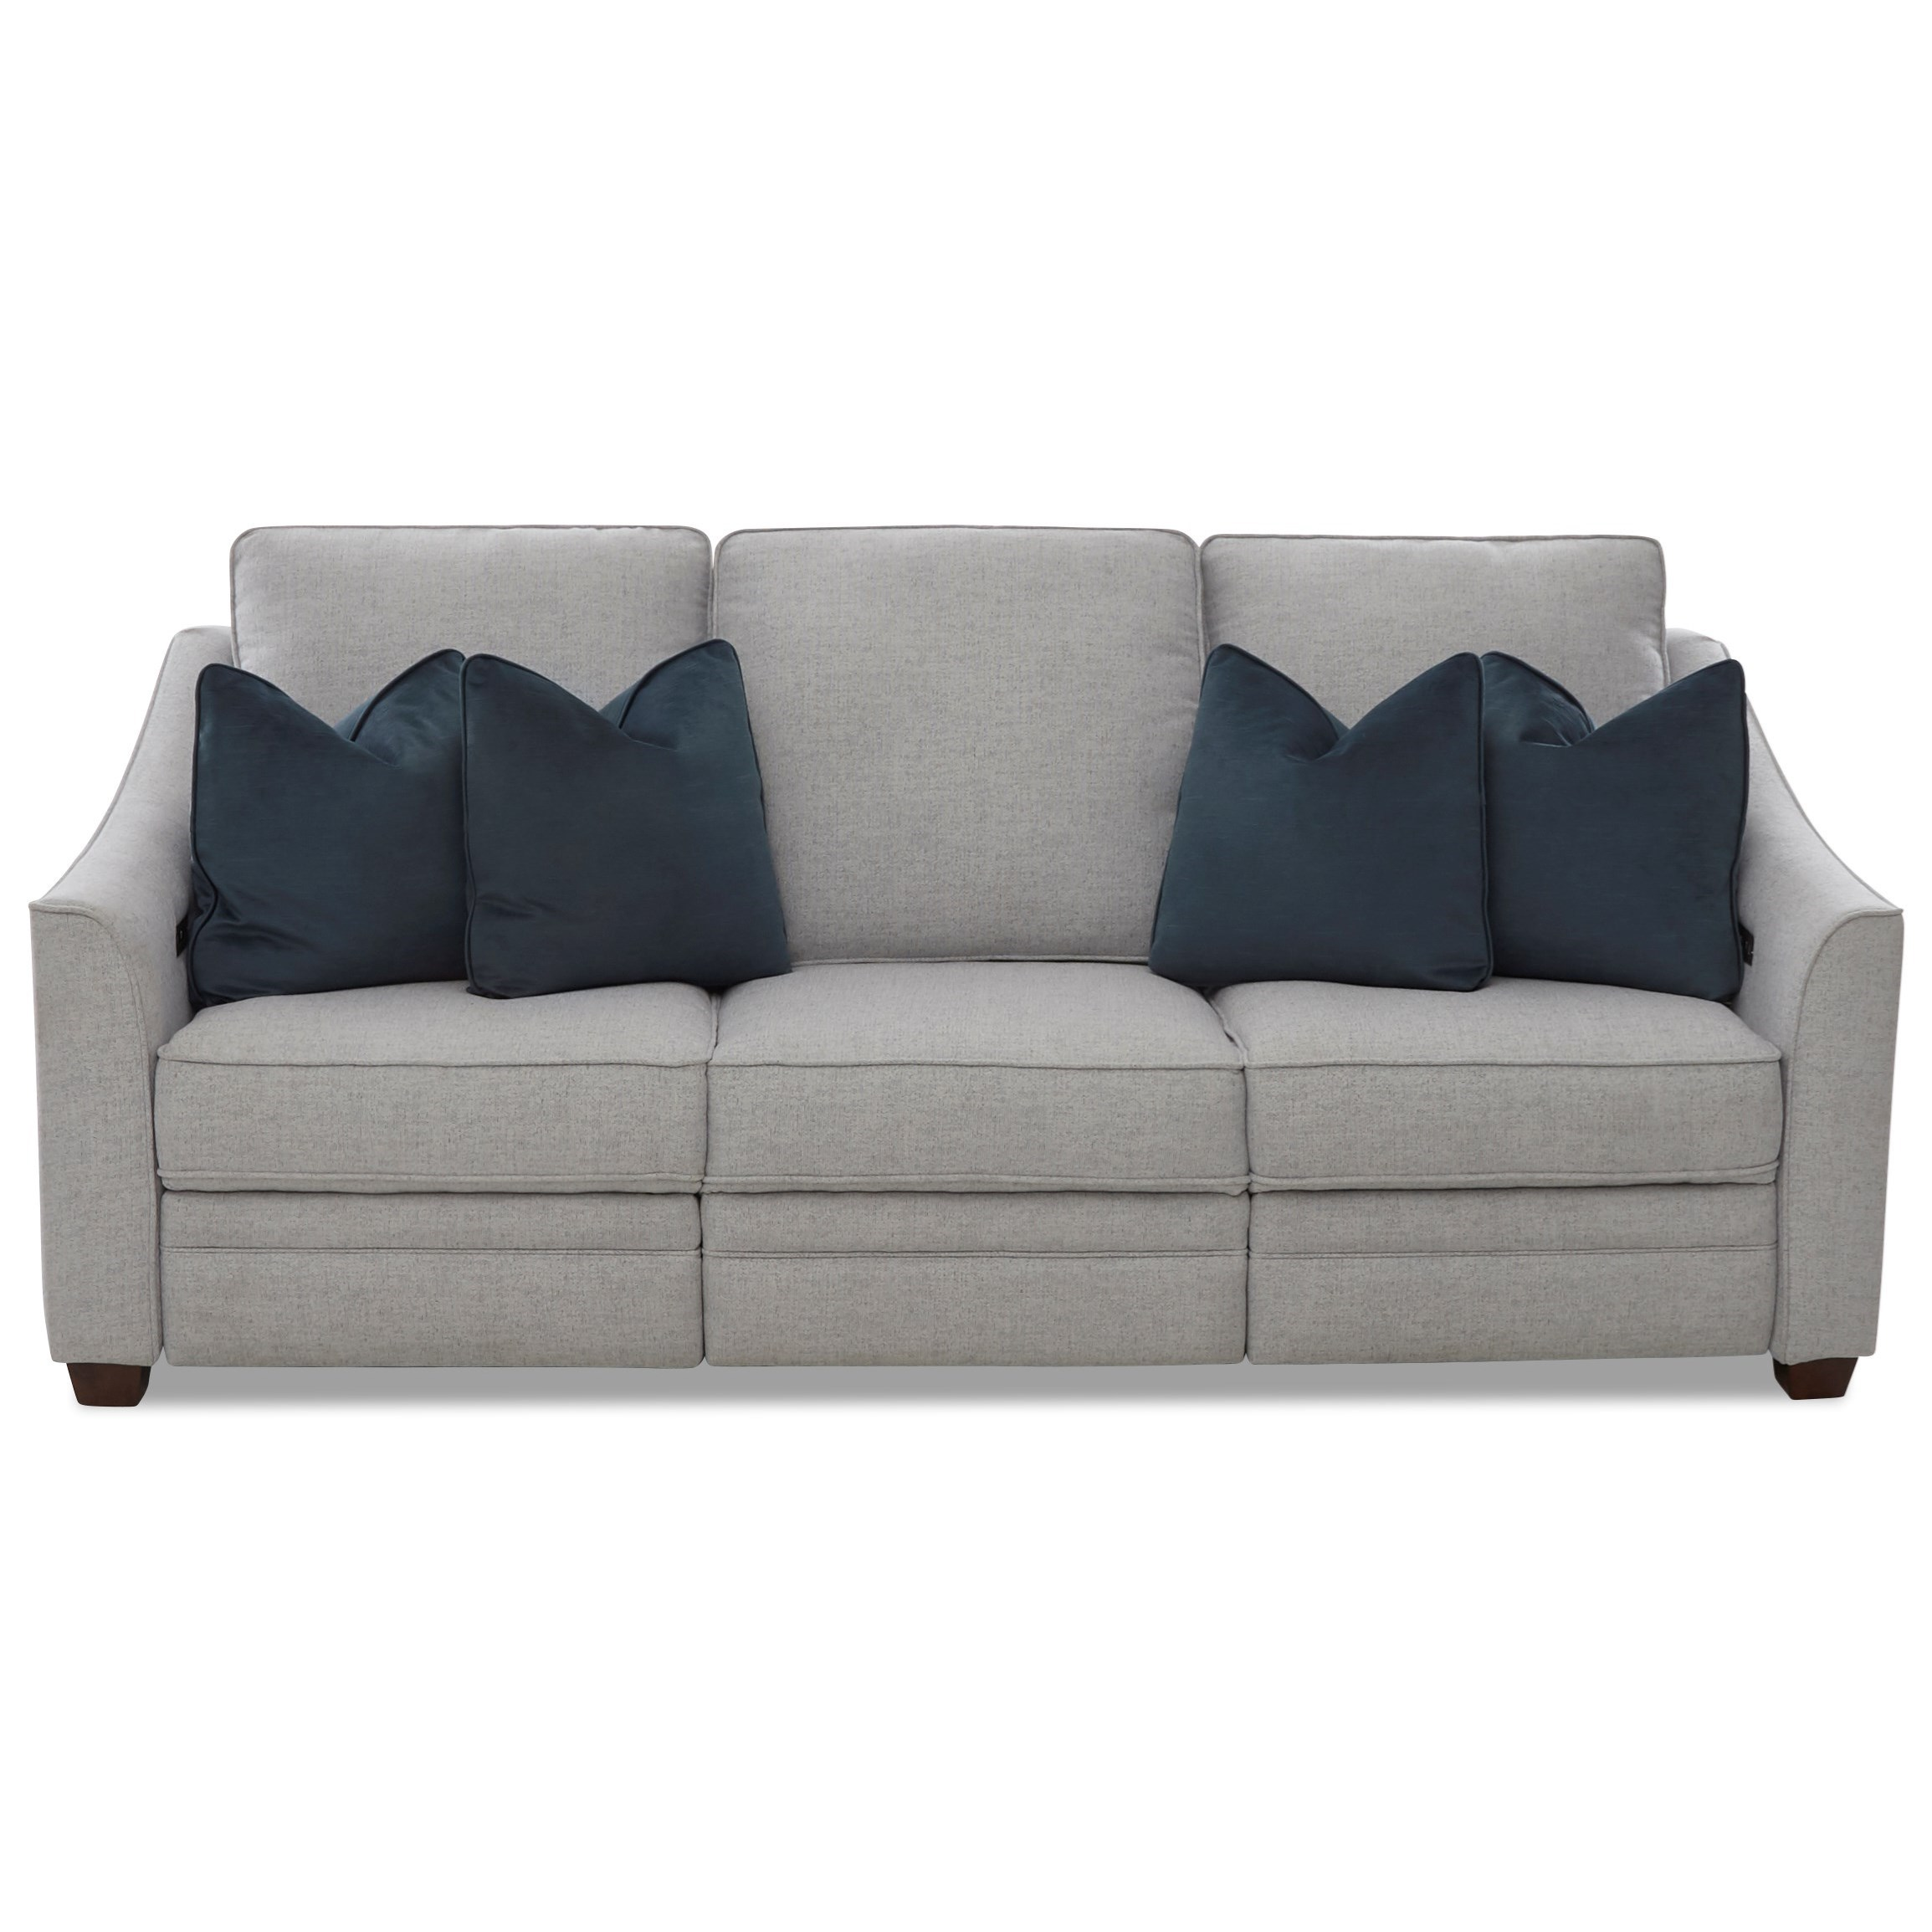 Ensley Power Hybrid Sofa w/ Pwr Headrests by Klaussner at Johnny Janosik